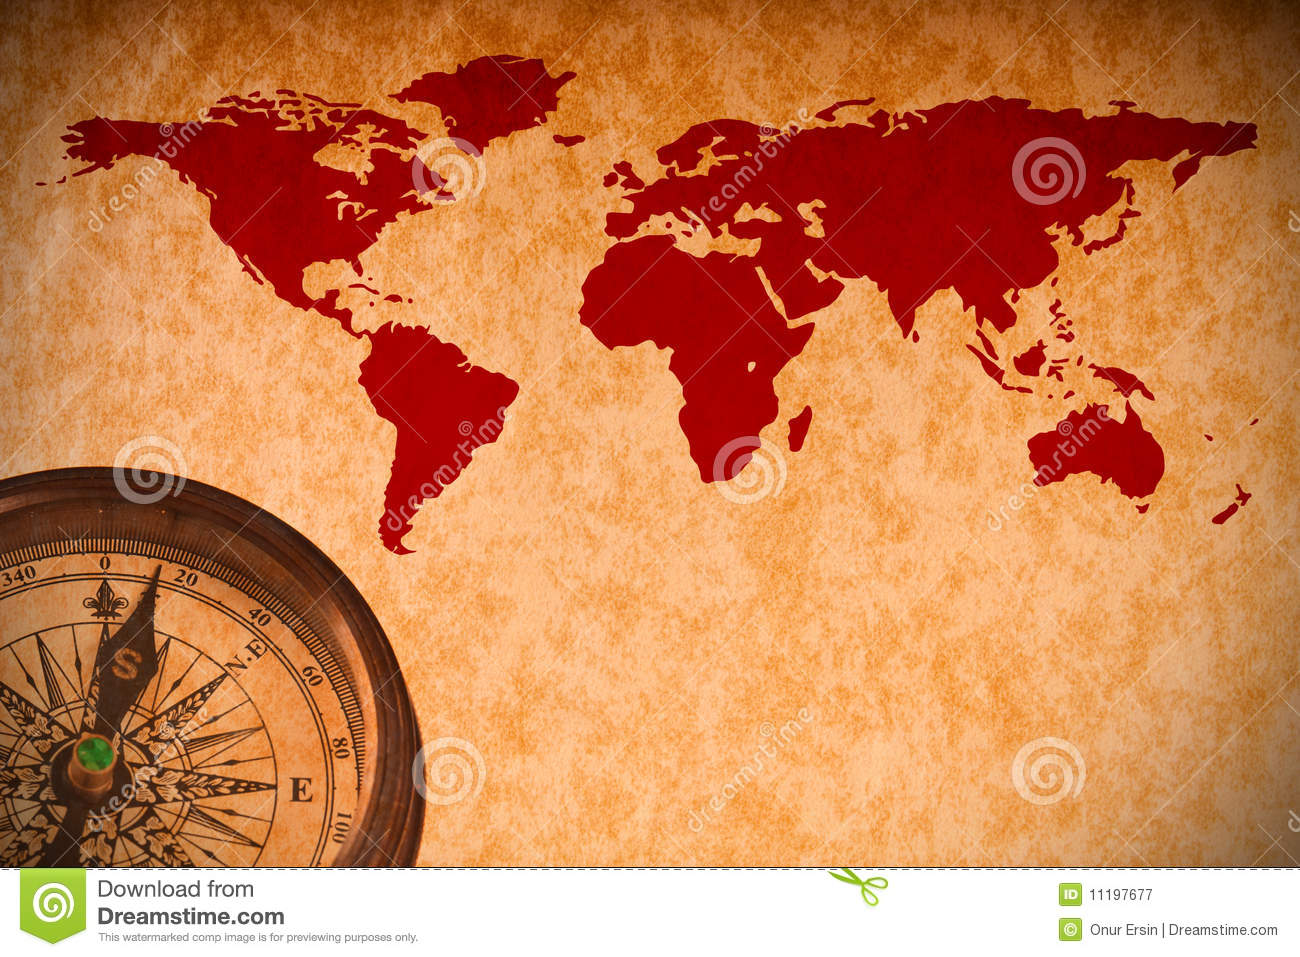 World map with compass on vintage paper stock image image of world map with compass on vintage paper gumiabroncs Images